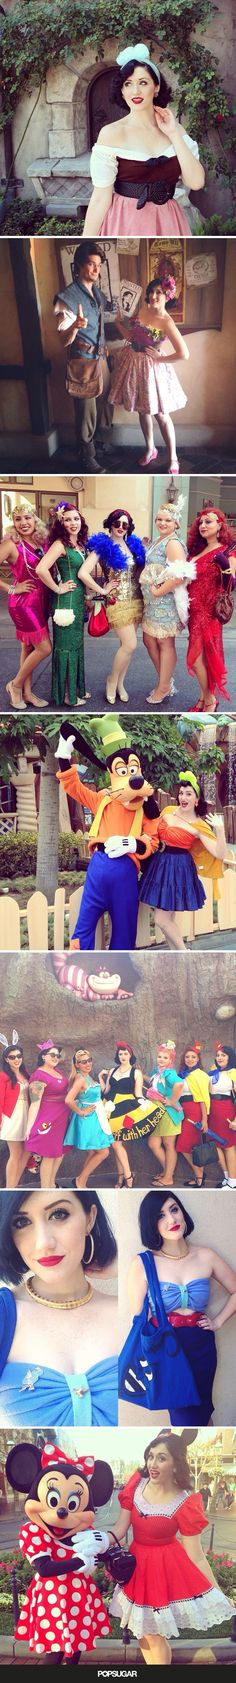 Pin for Later: An Undercover Disney Princess Shares the Secrets of Disneybounding